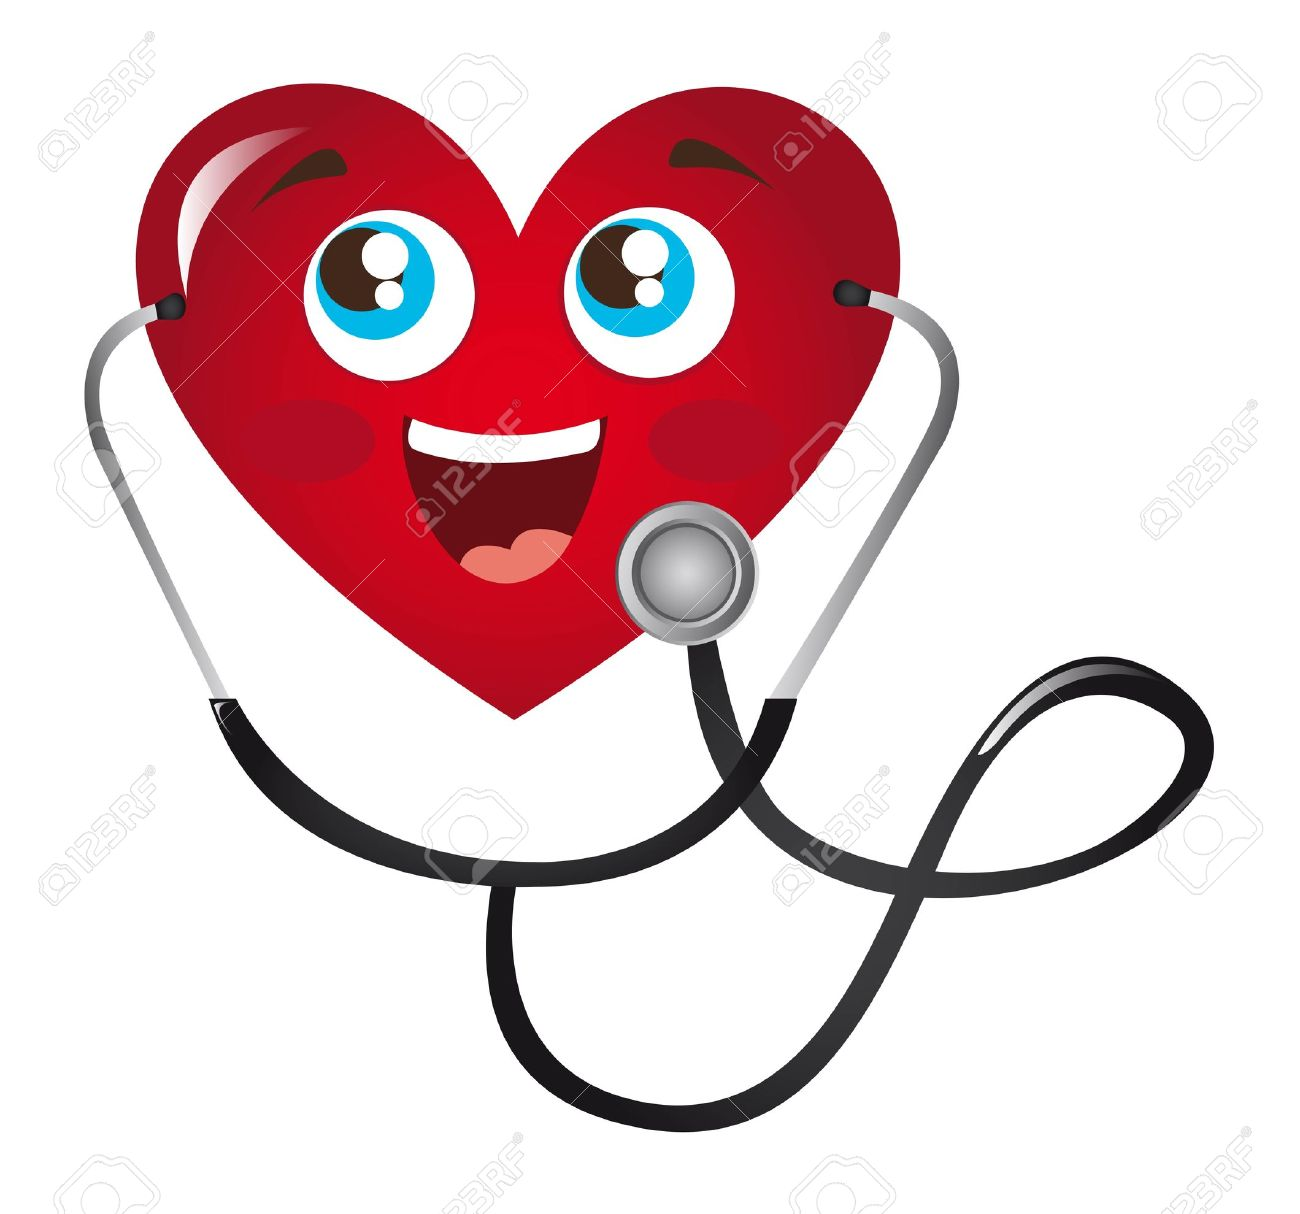 Doctor Listening to Heart Doctor Cartoon Heart With